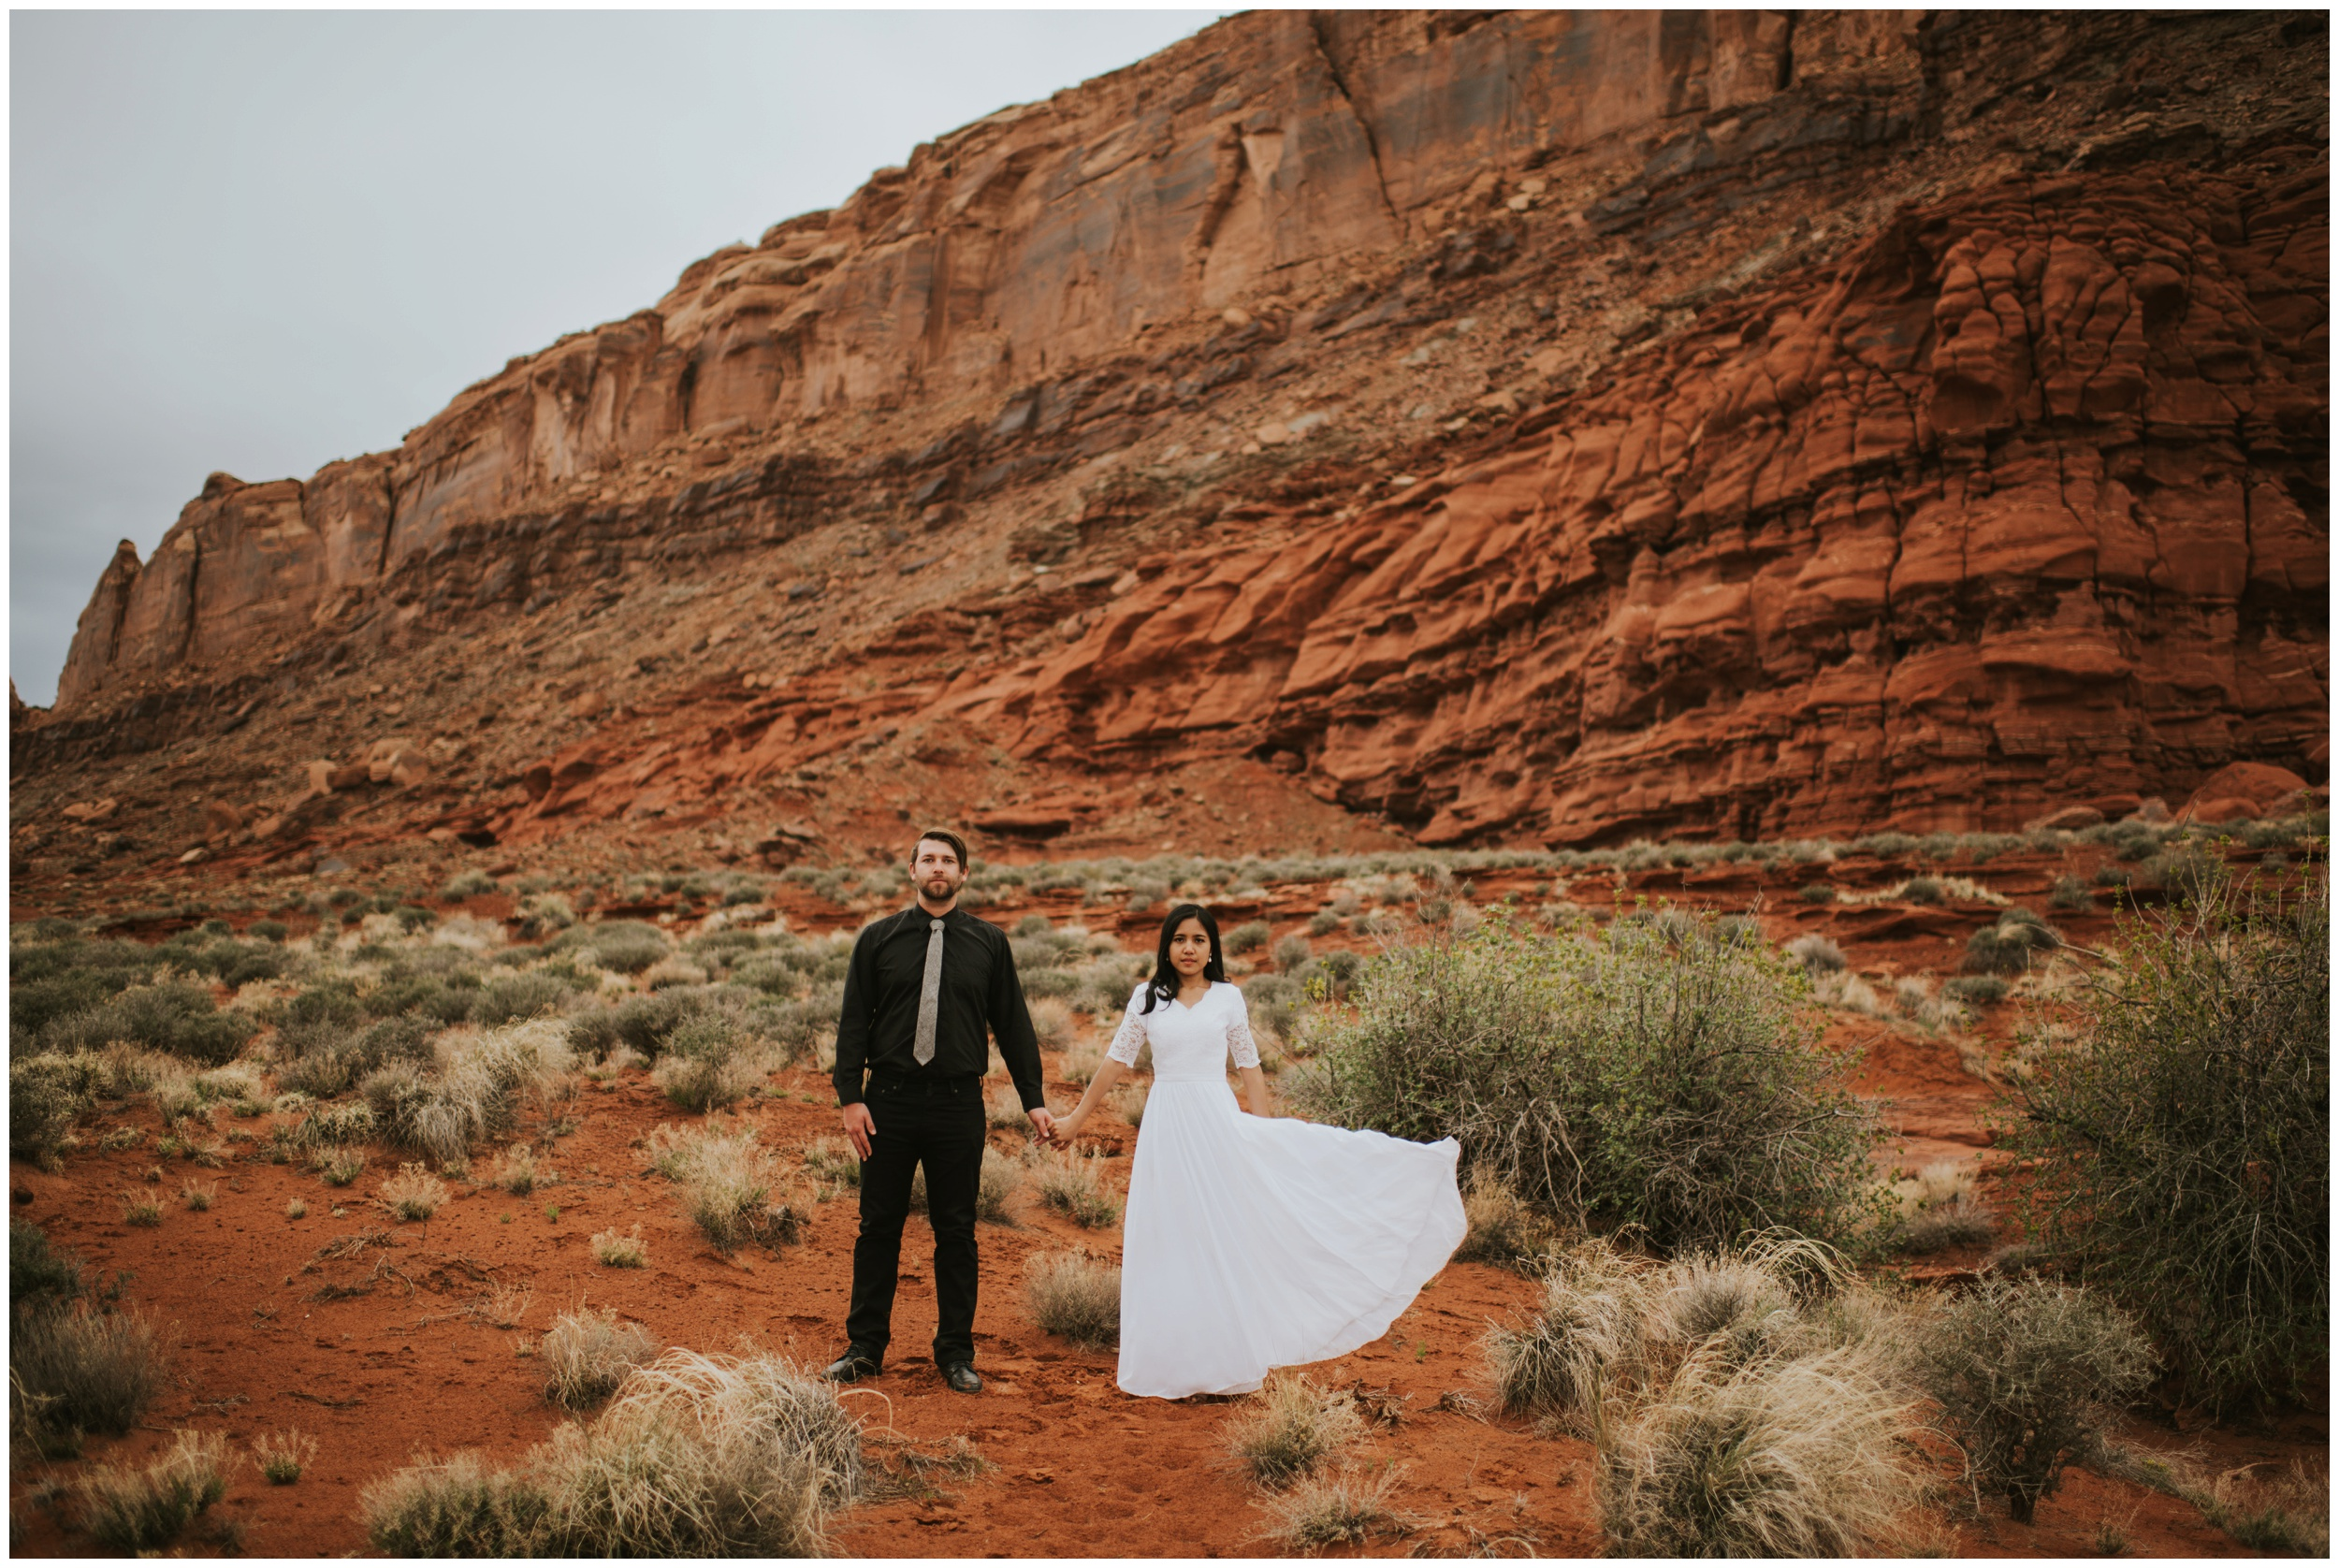 Moody portrait of a bride and groom in a canyon, rich colors |Moab Utah, Photographer www.riversandroadsphotography.com